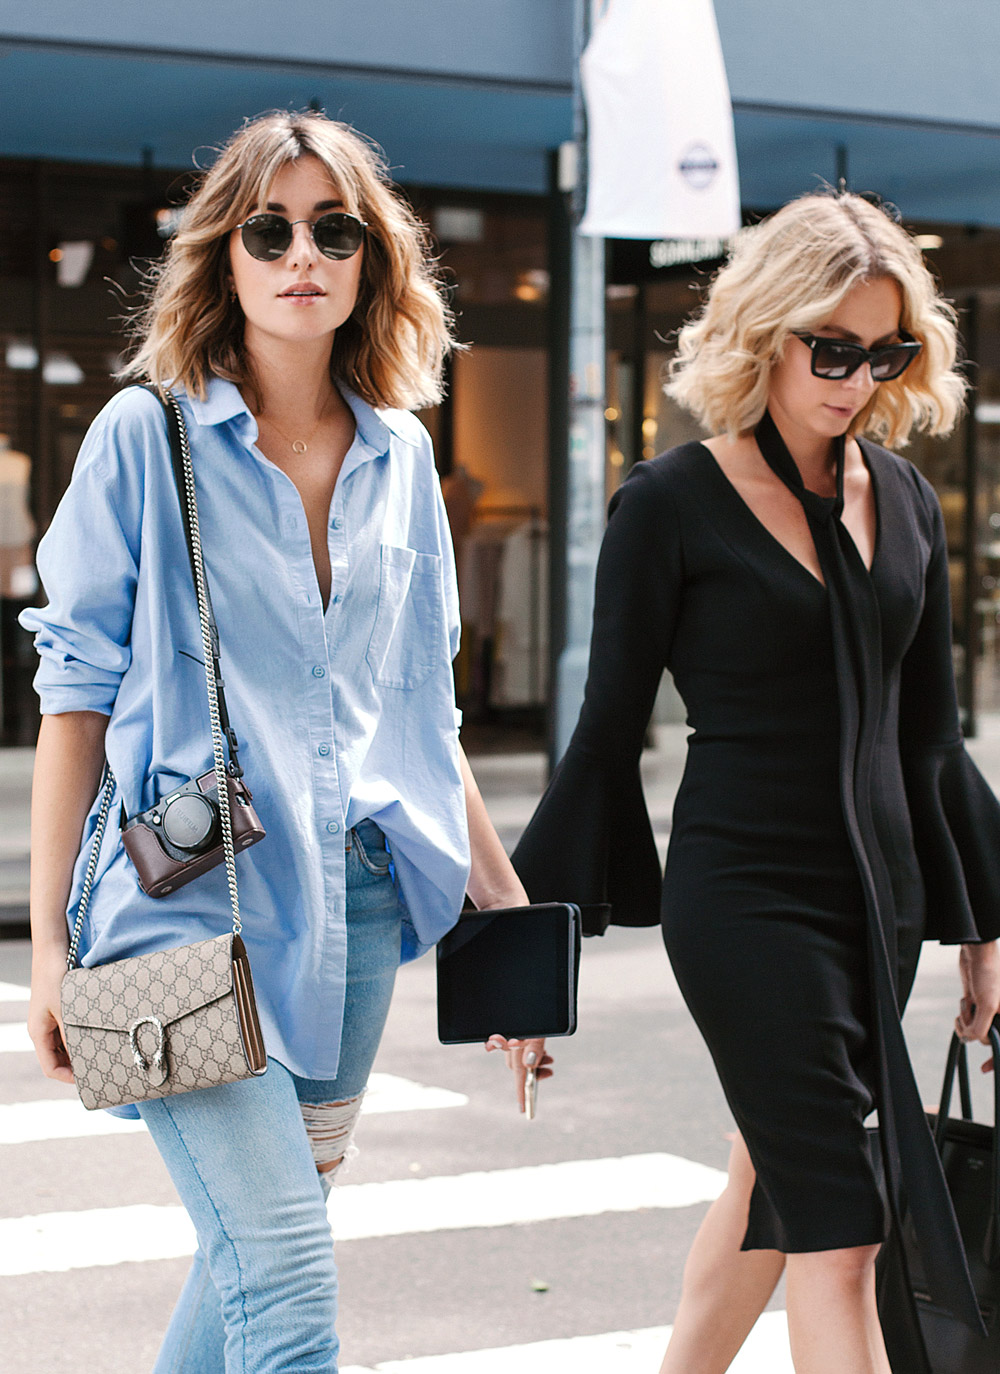 chronicles-of-her-street-style-sisters02.jpg